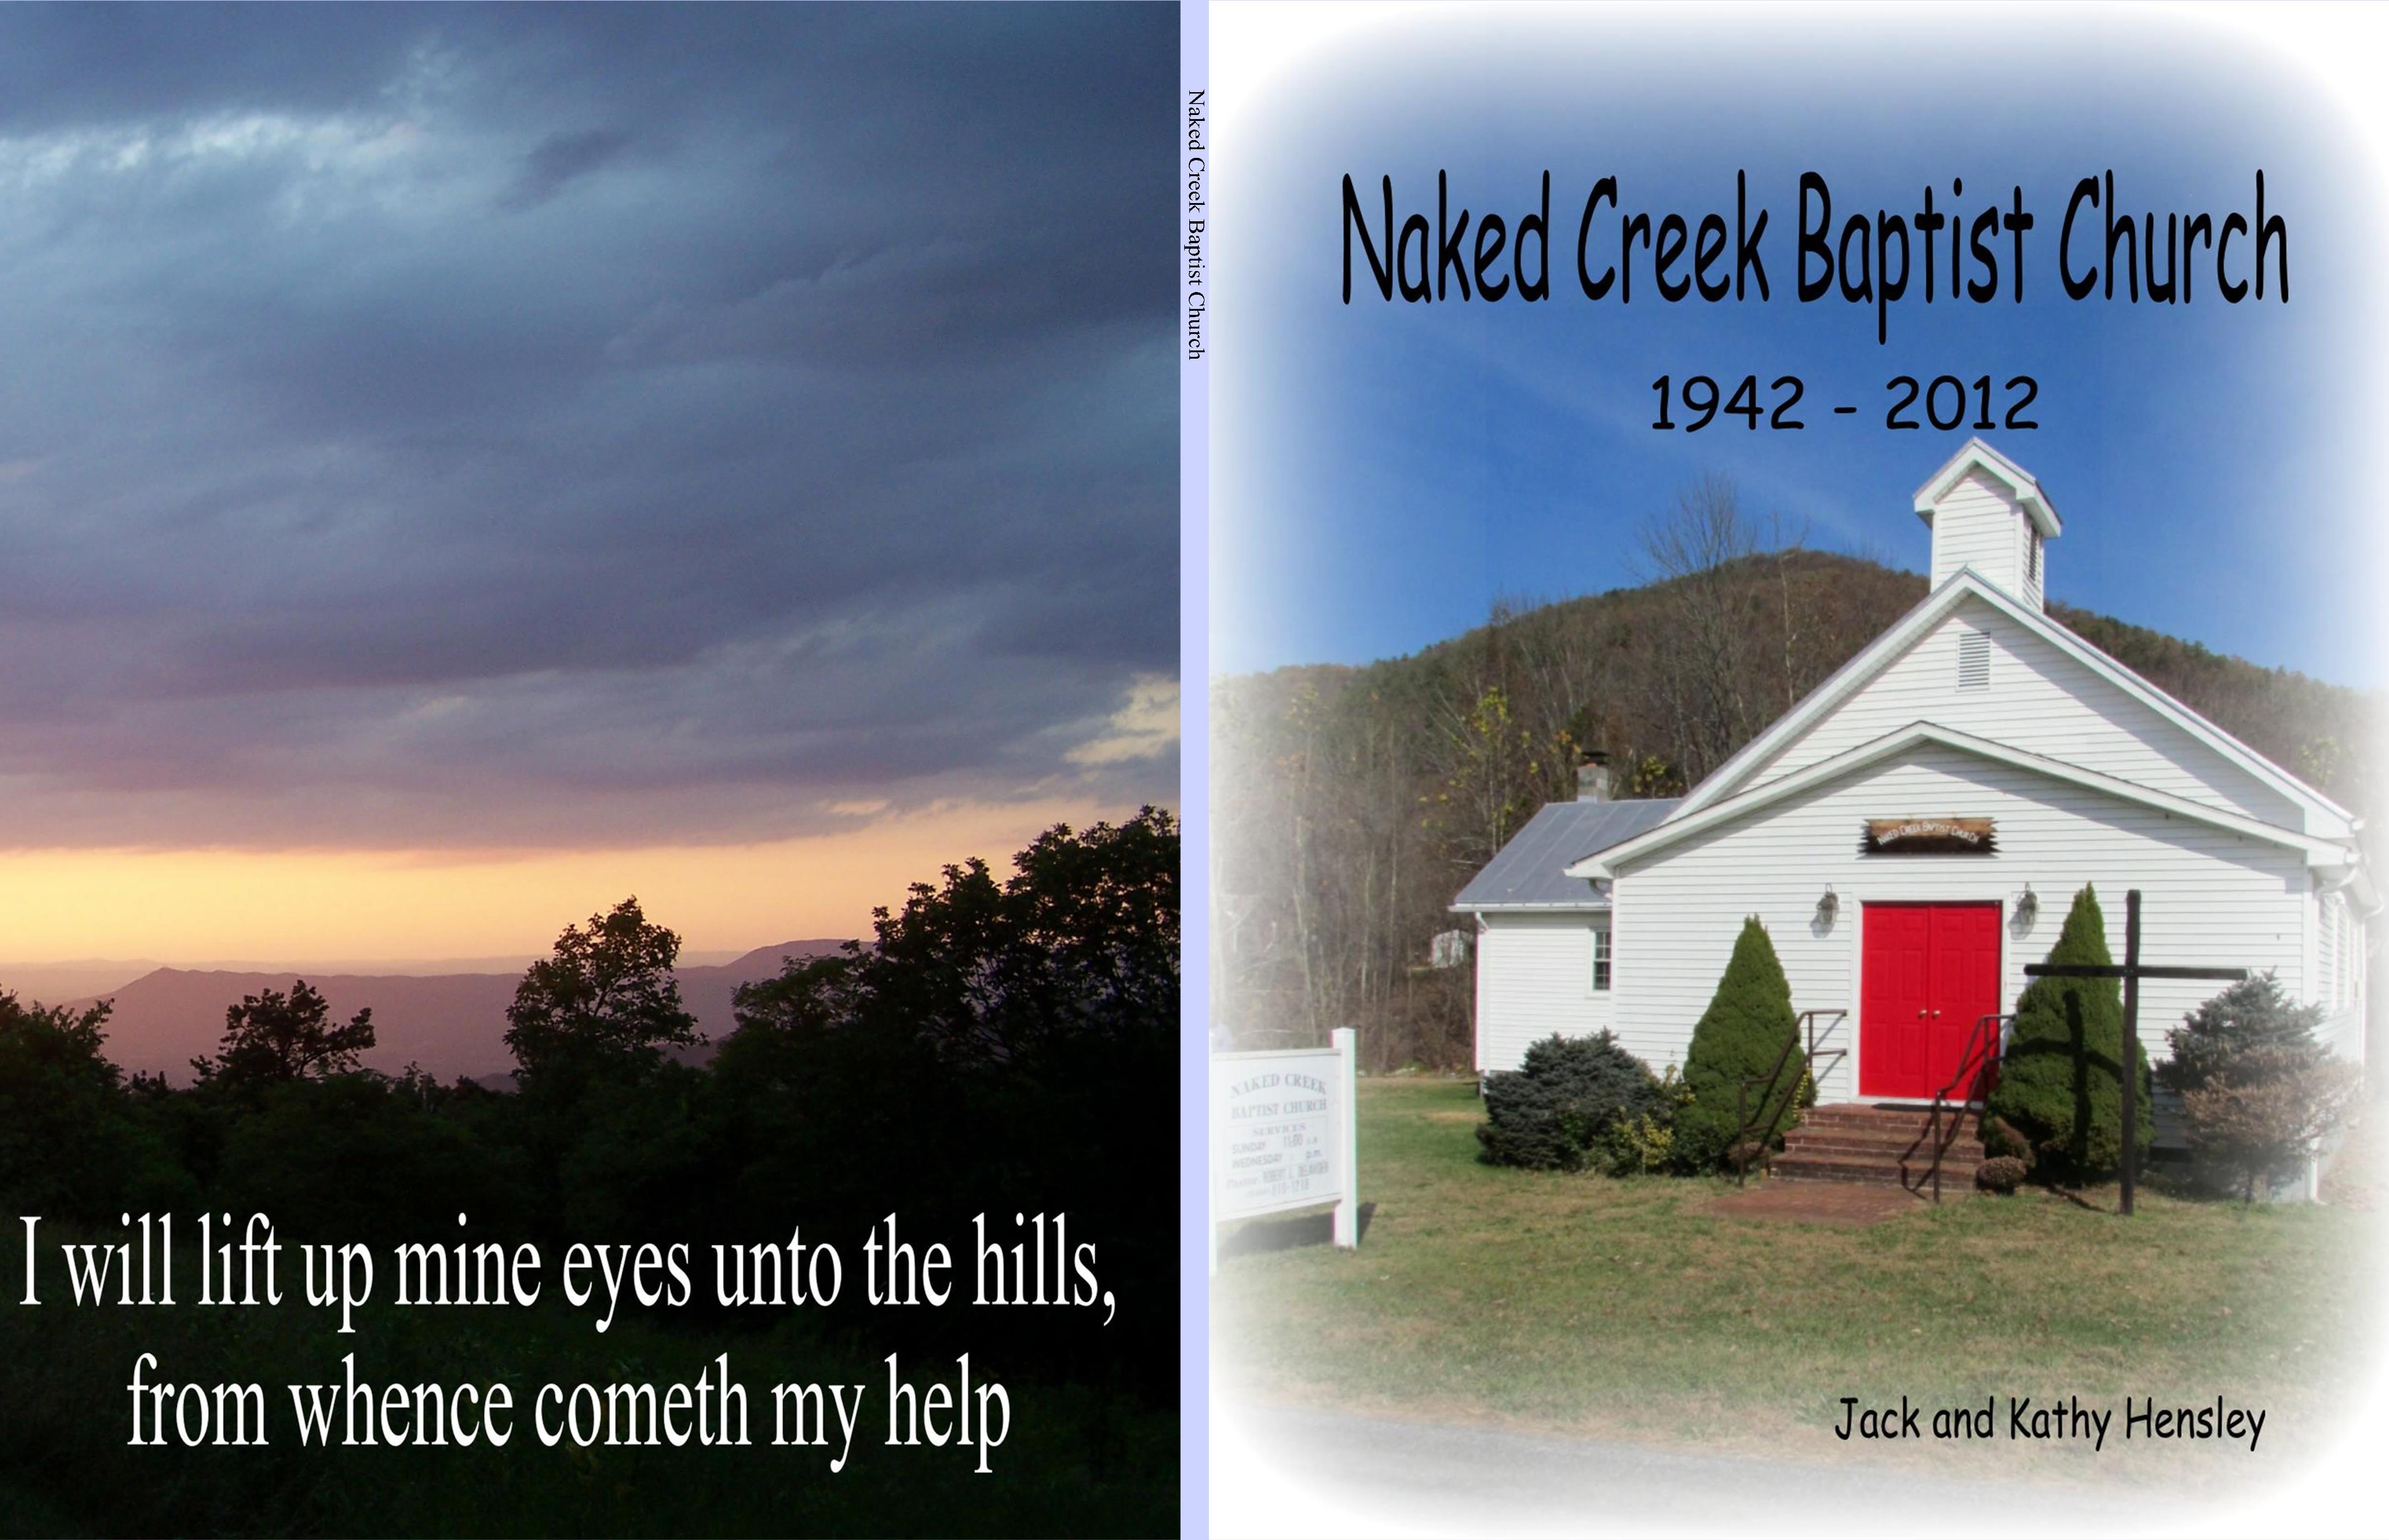 Naked Creek Baptist Church cover image